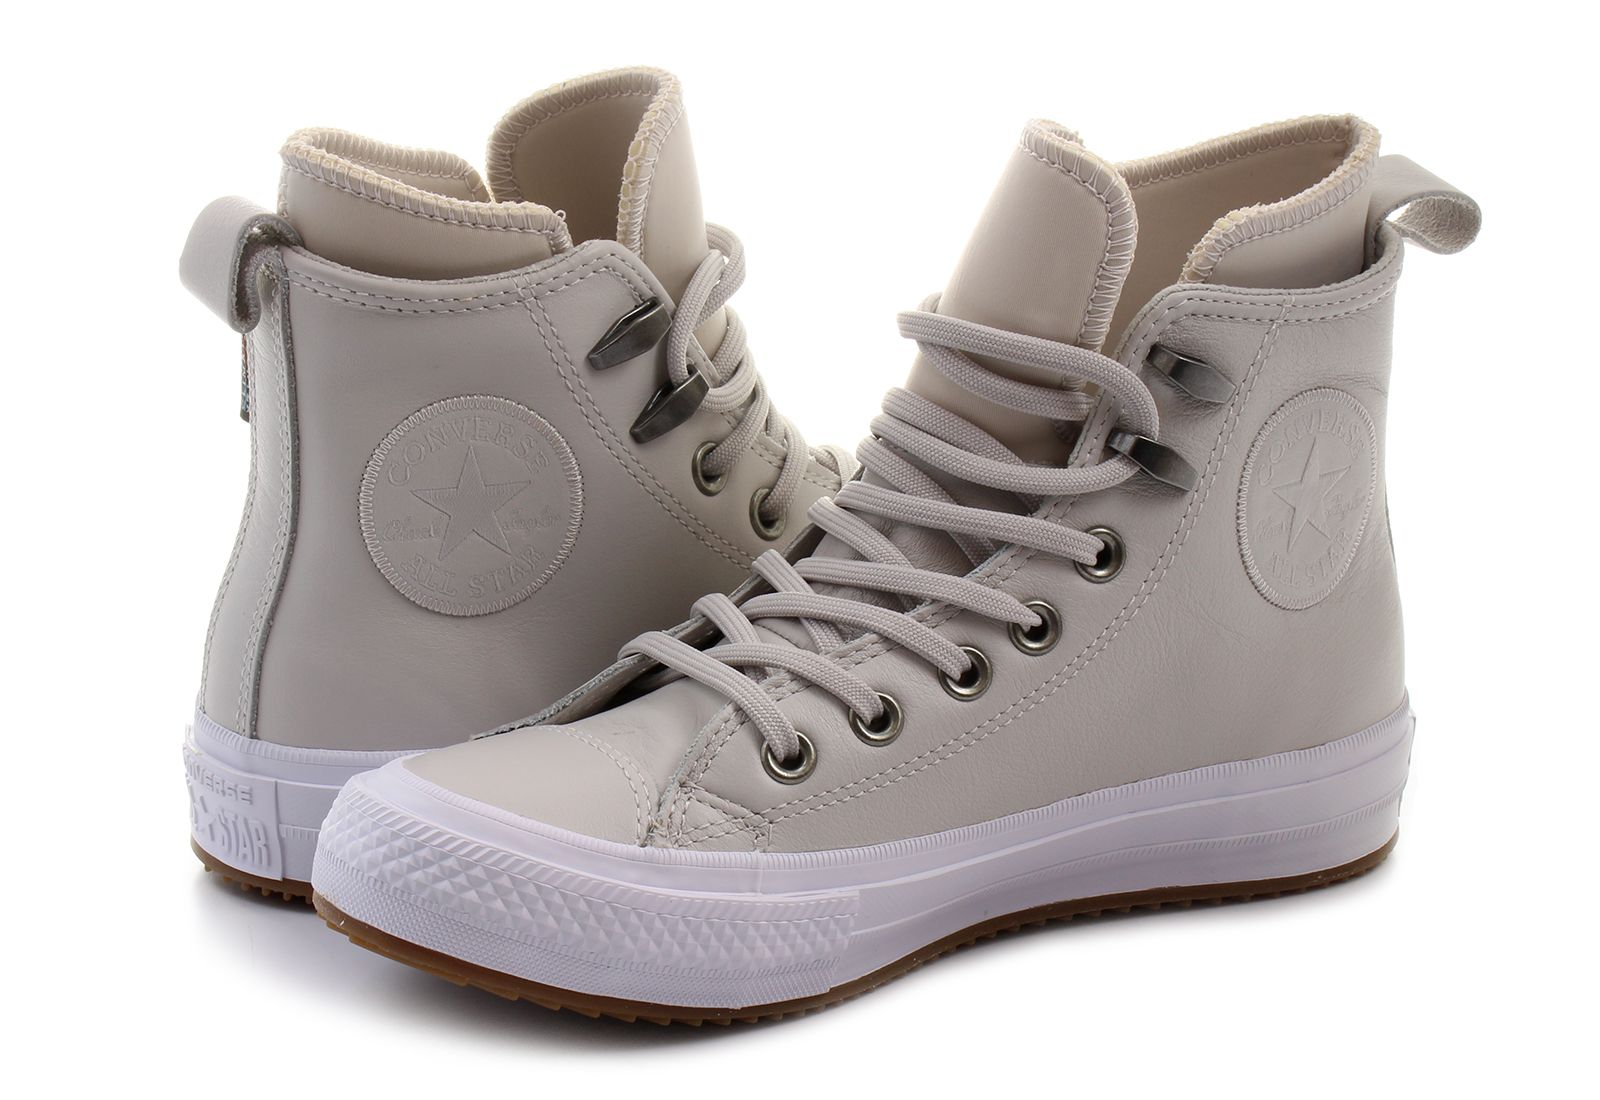 4b9b9adbaba Converse Tenisky - Chuck Taylor Waterproof Boot Leather ...